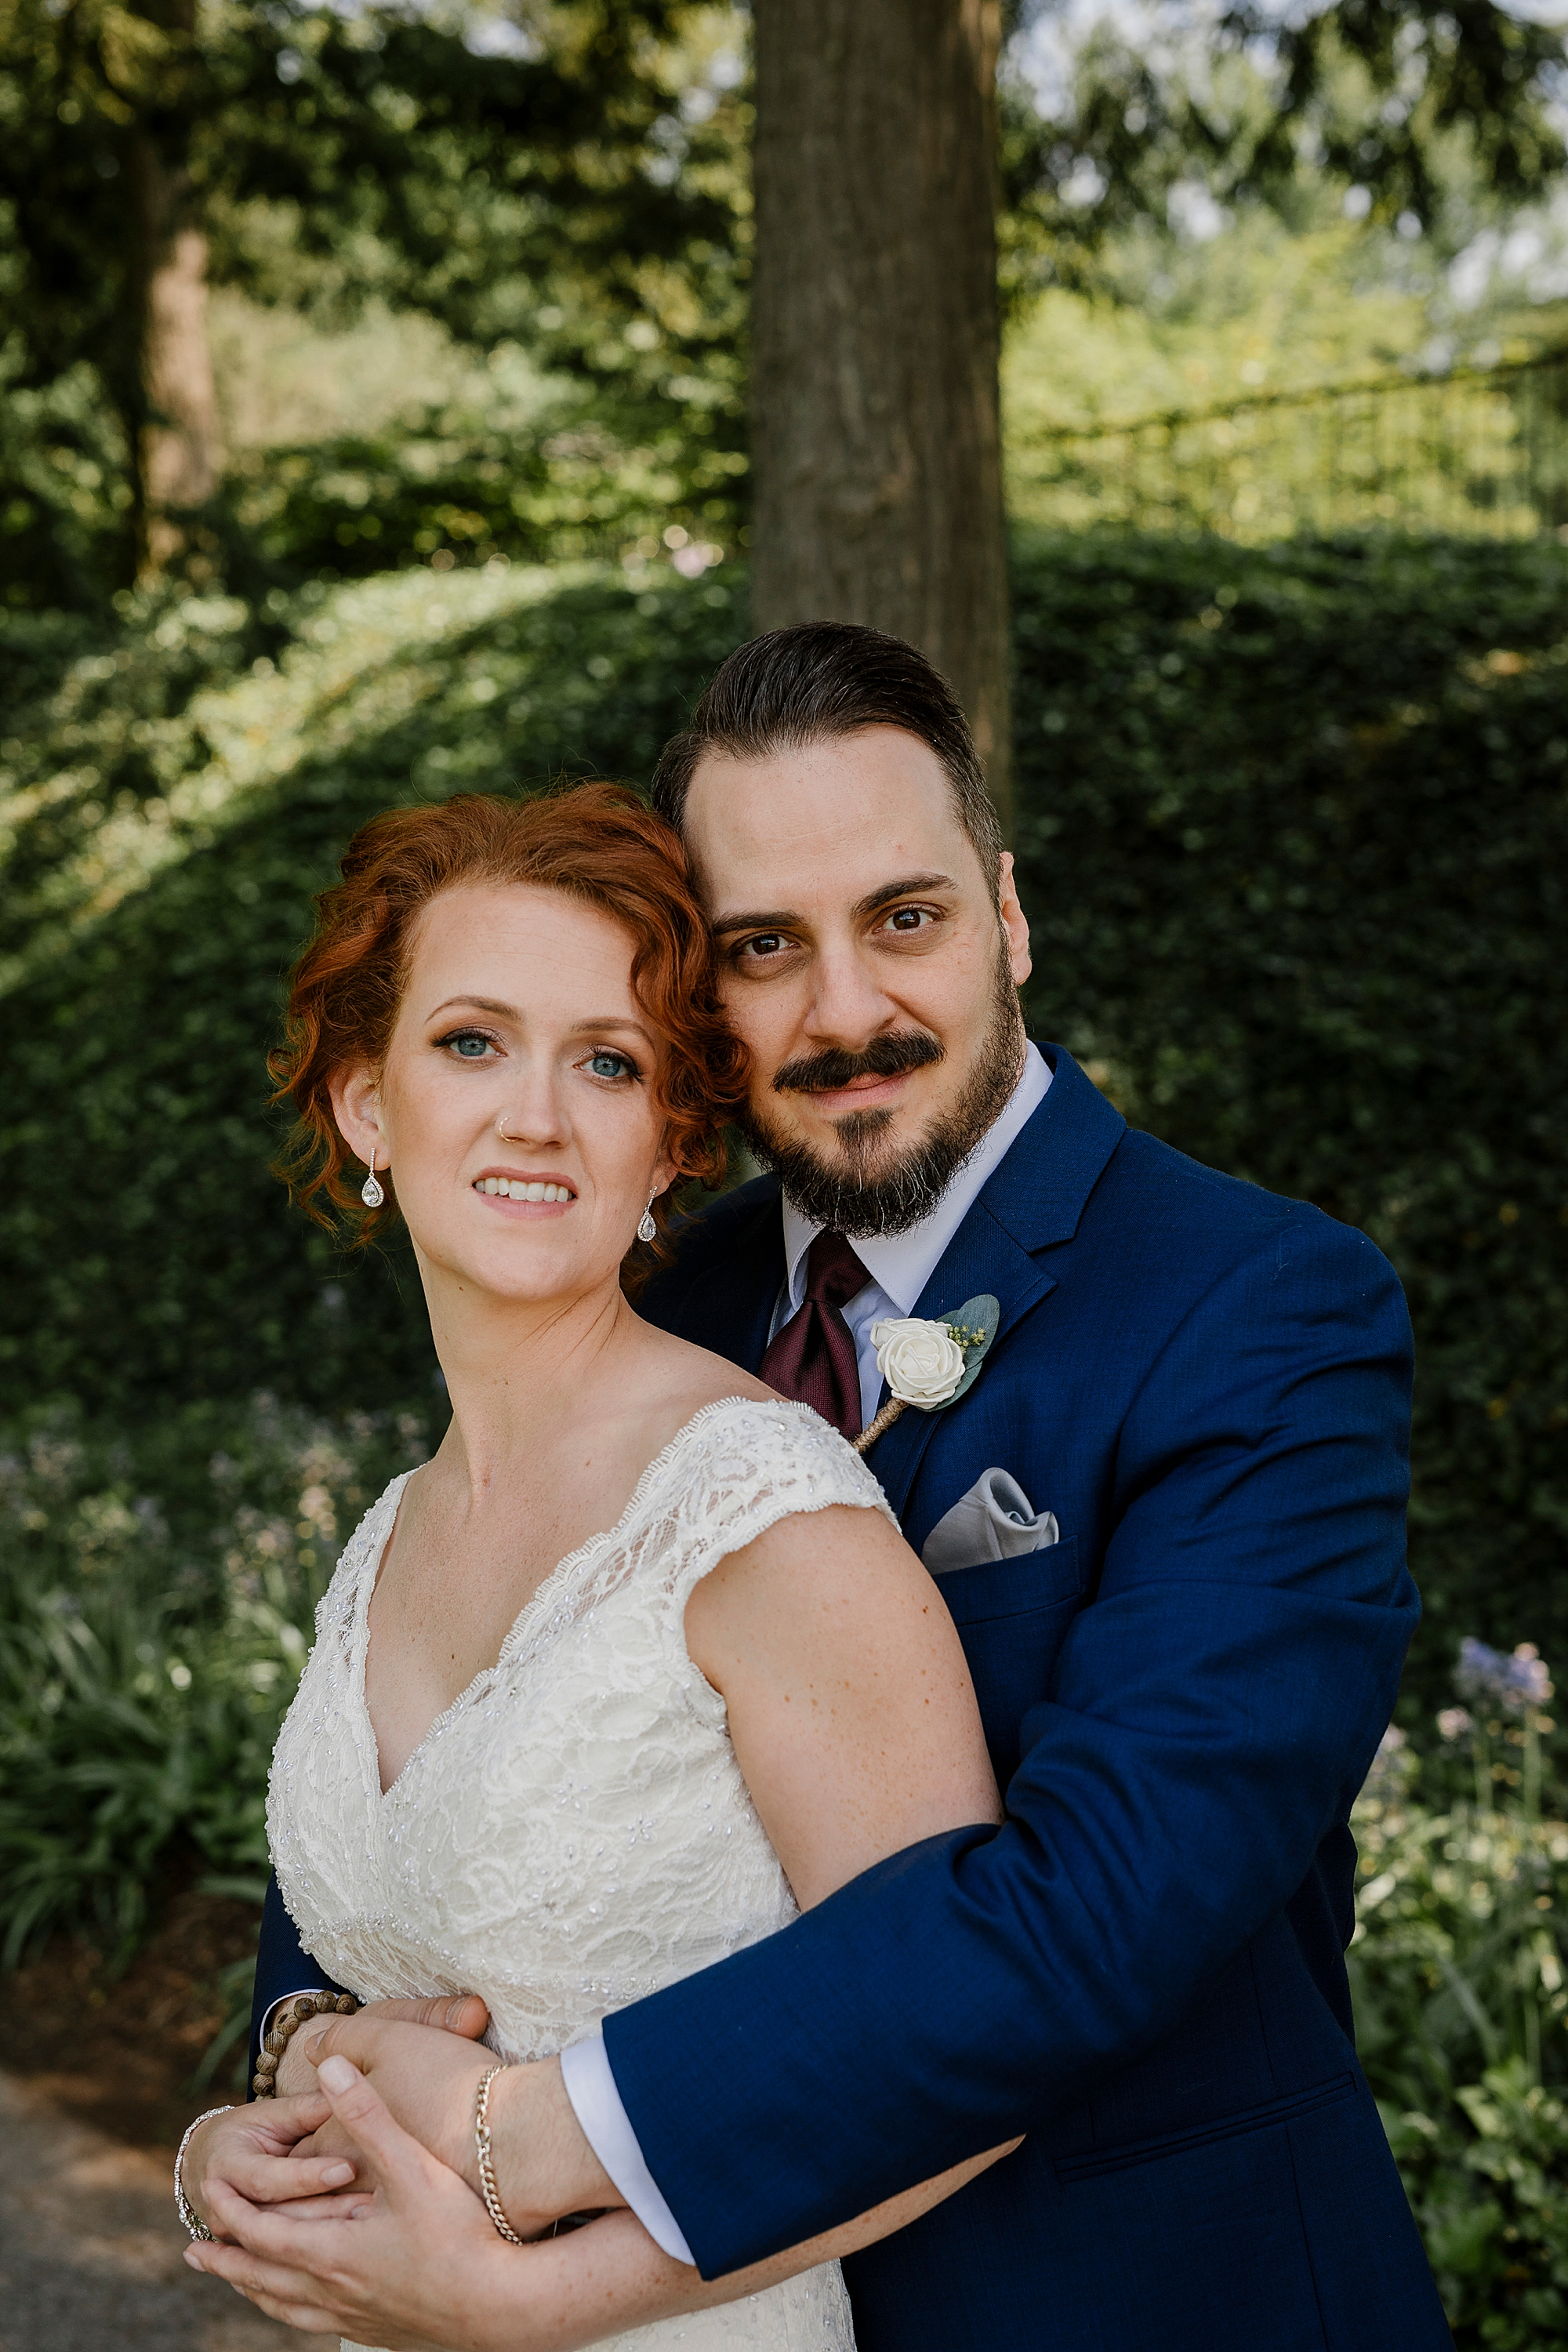 Megan and Daniel_Northbrook_Marketplace_Longwood_Gardens_Chester_County_Unionville_Love_by_Joe_Mac_Wedding_photography__0045.jpg